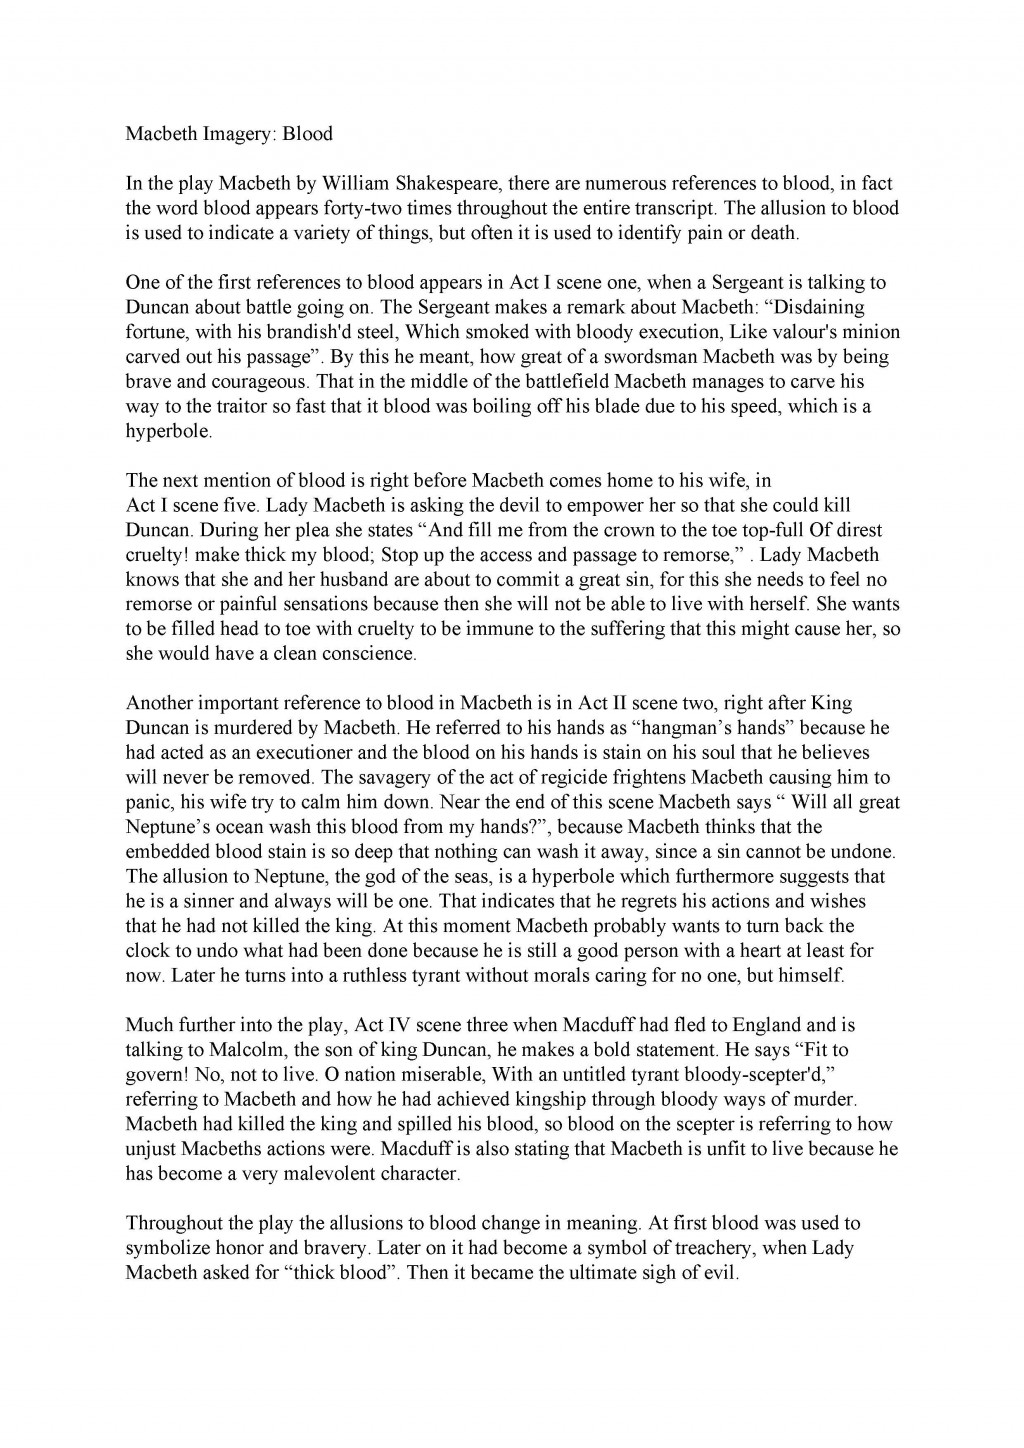 005 Example Of Good Essay Macbeth Rare A Examples Perfect Writing Academic Introduction Research Paper Large